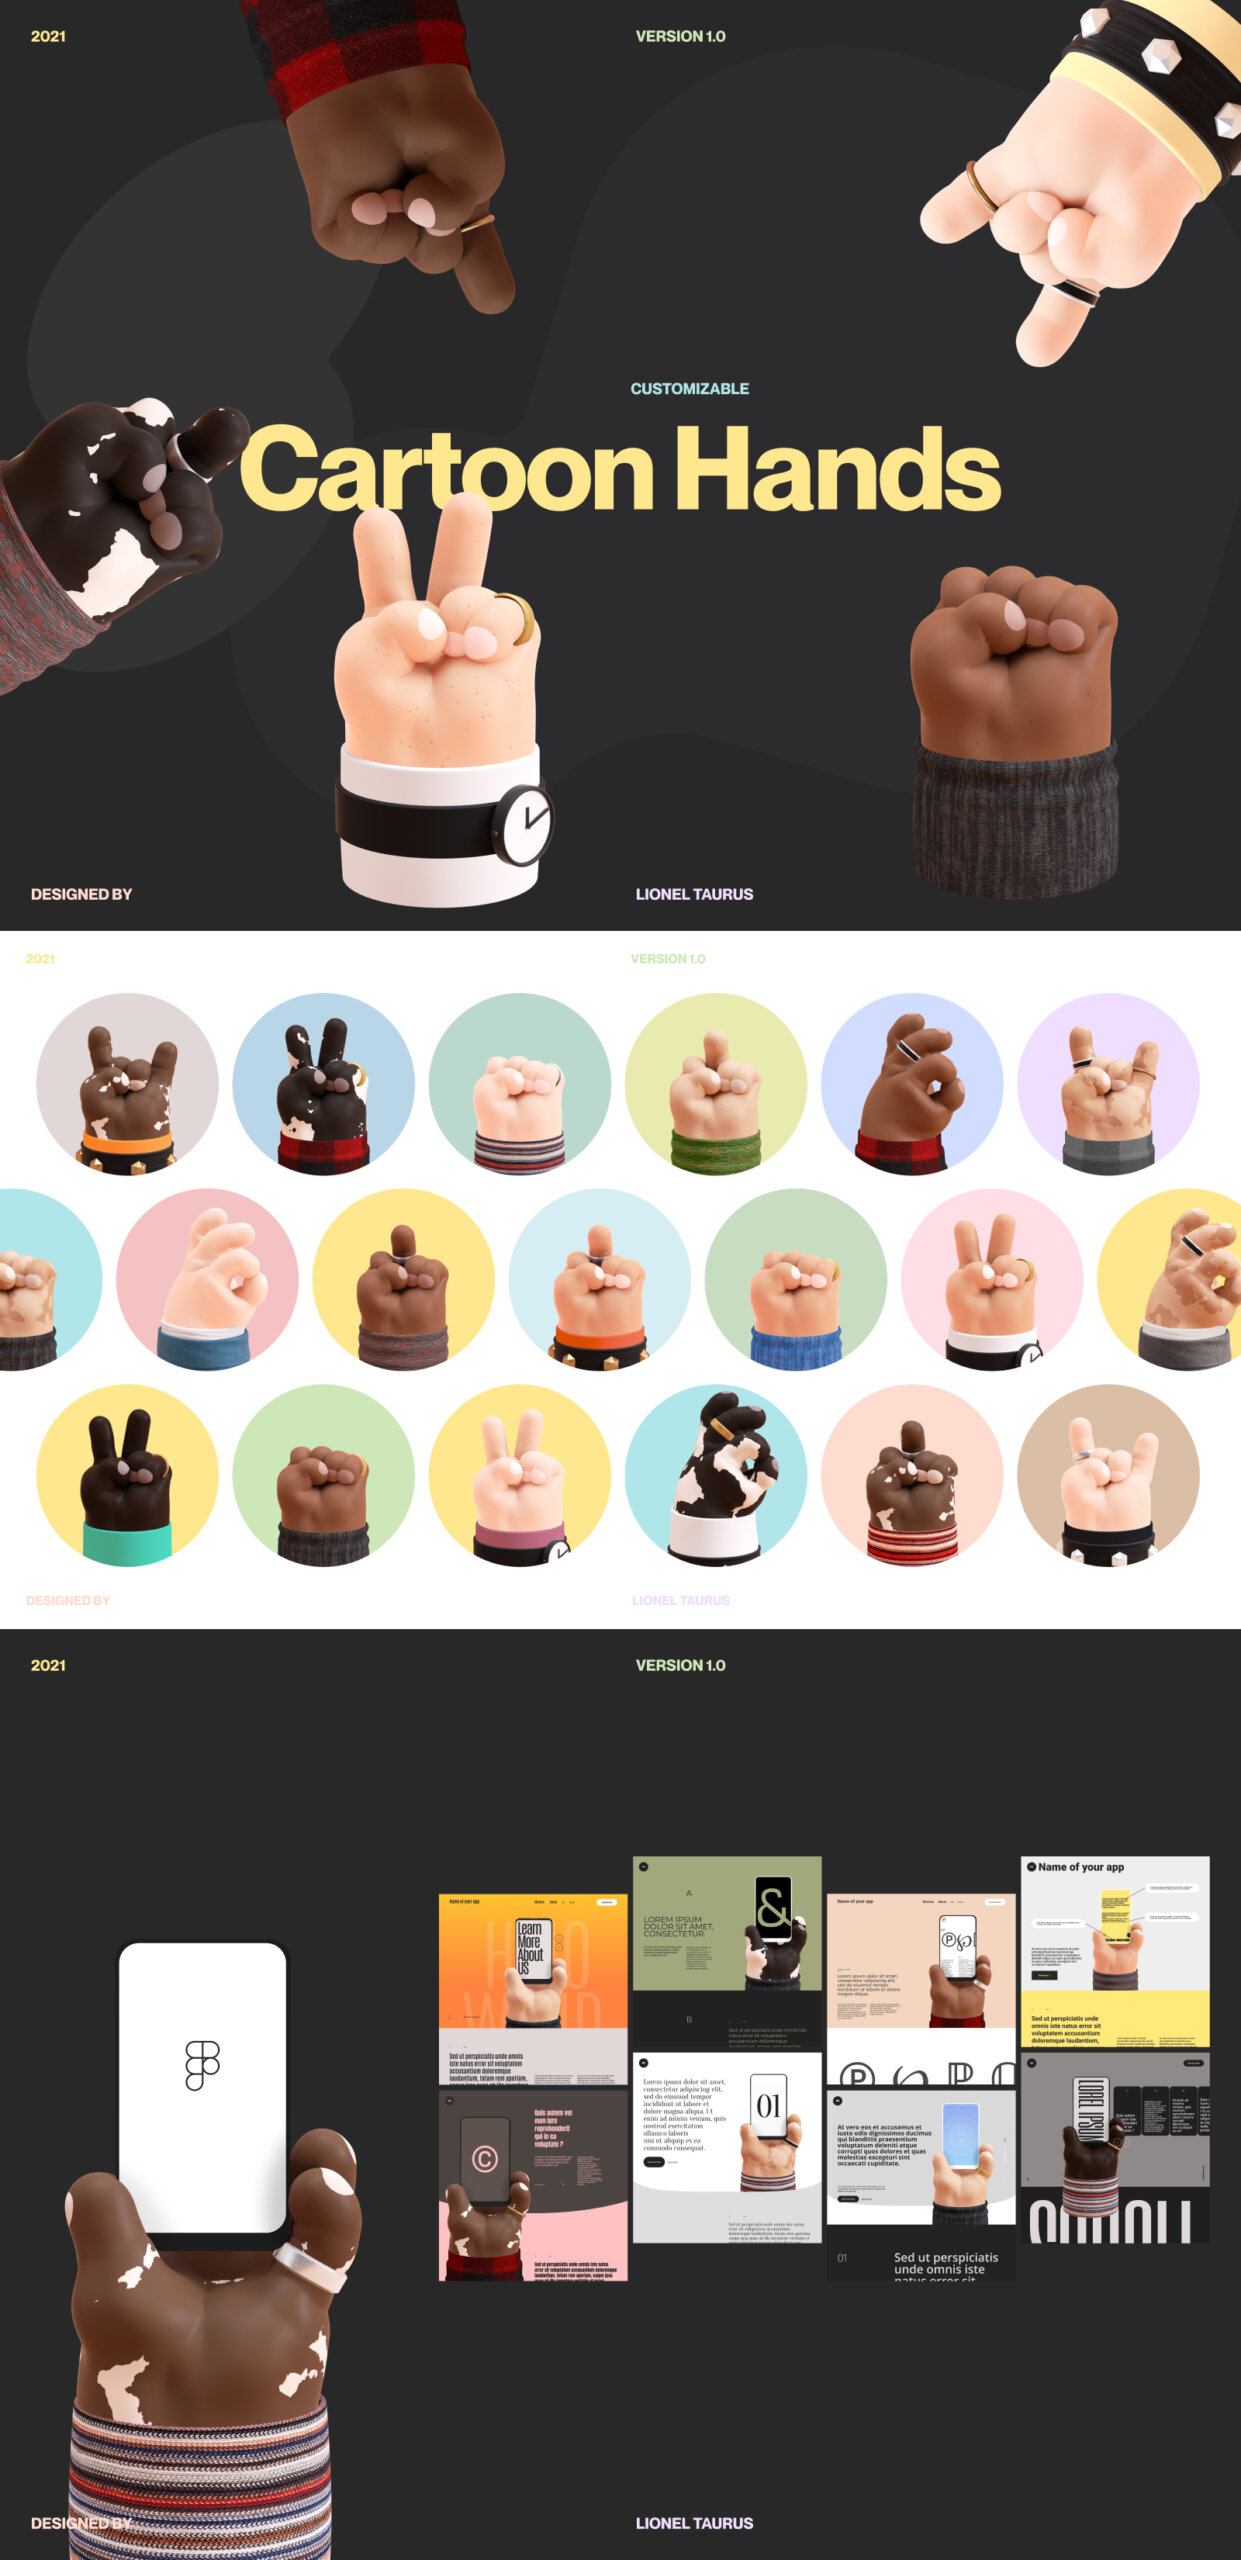 Free 3D Cartoon Hands Mockup for Figma from UIGarage